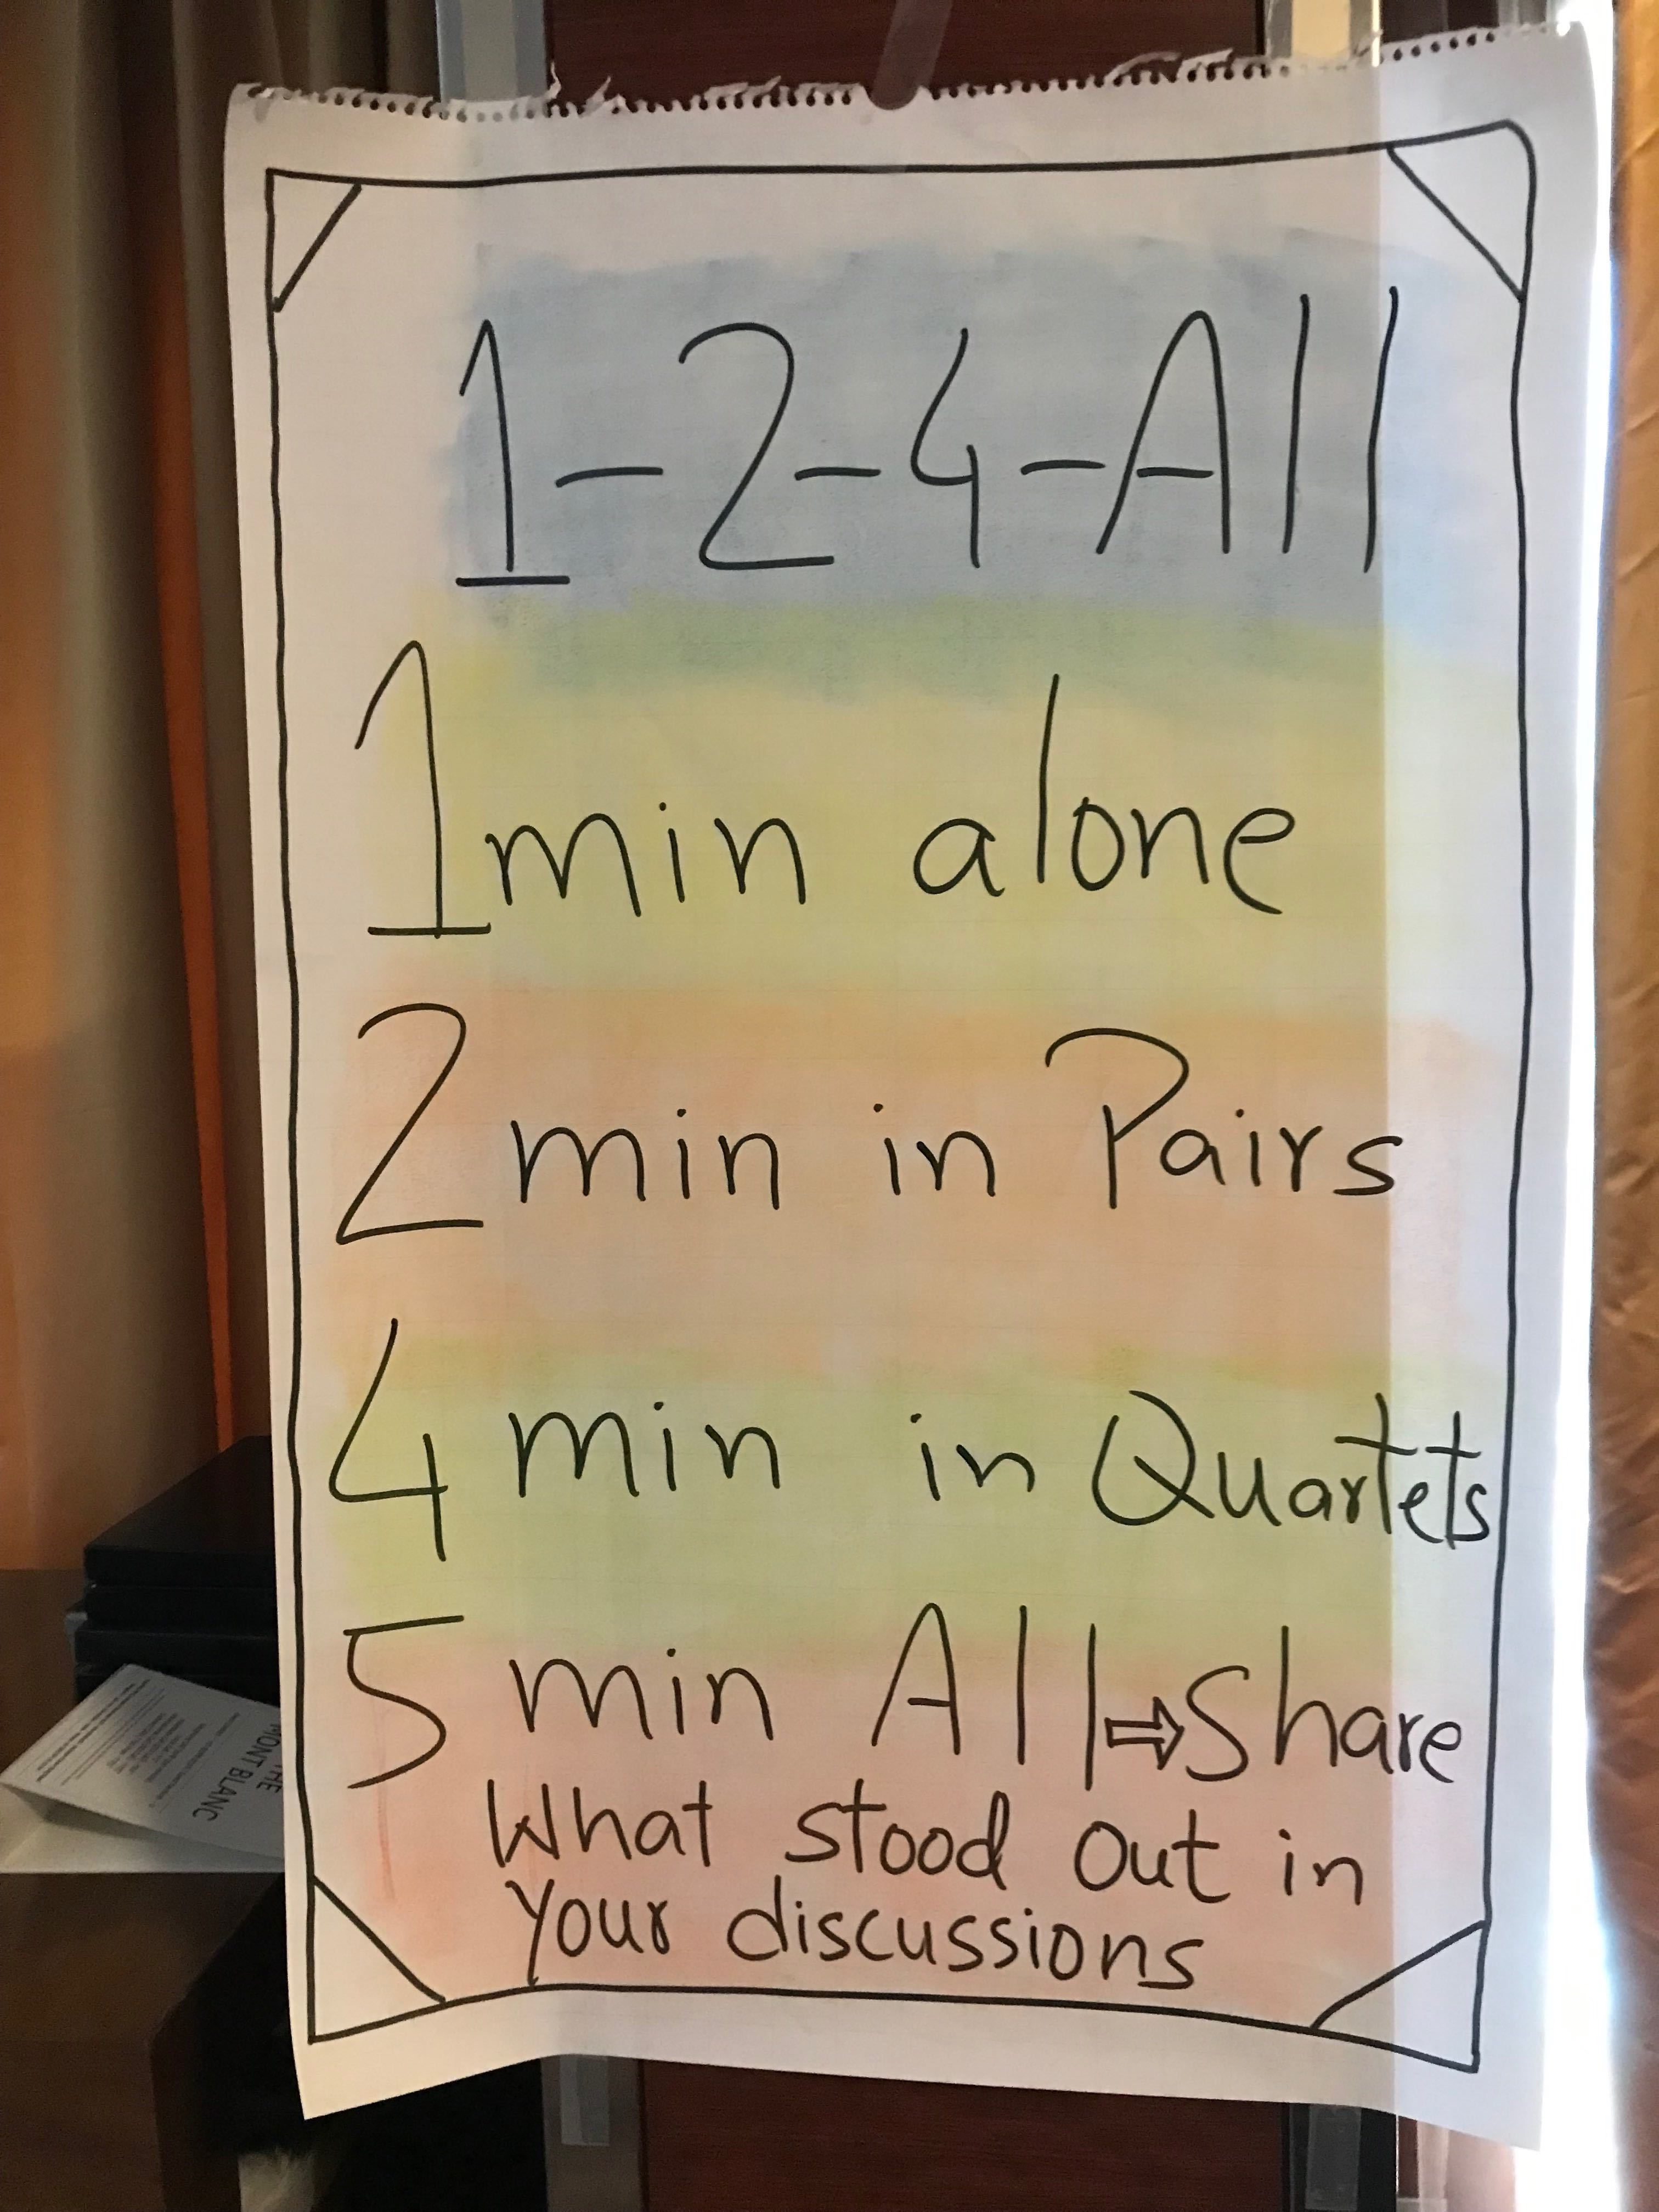 1-2-4-All instructions